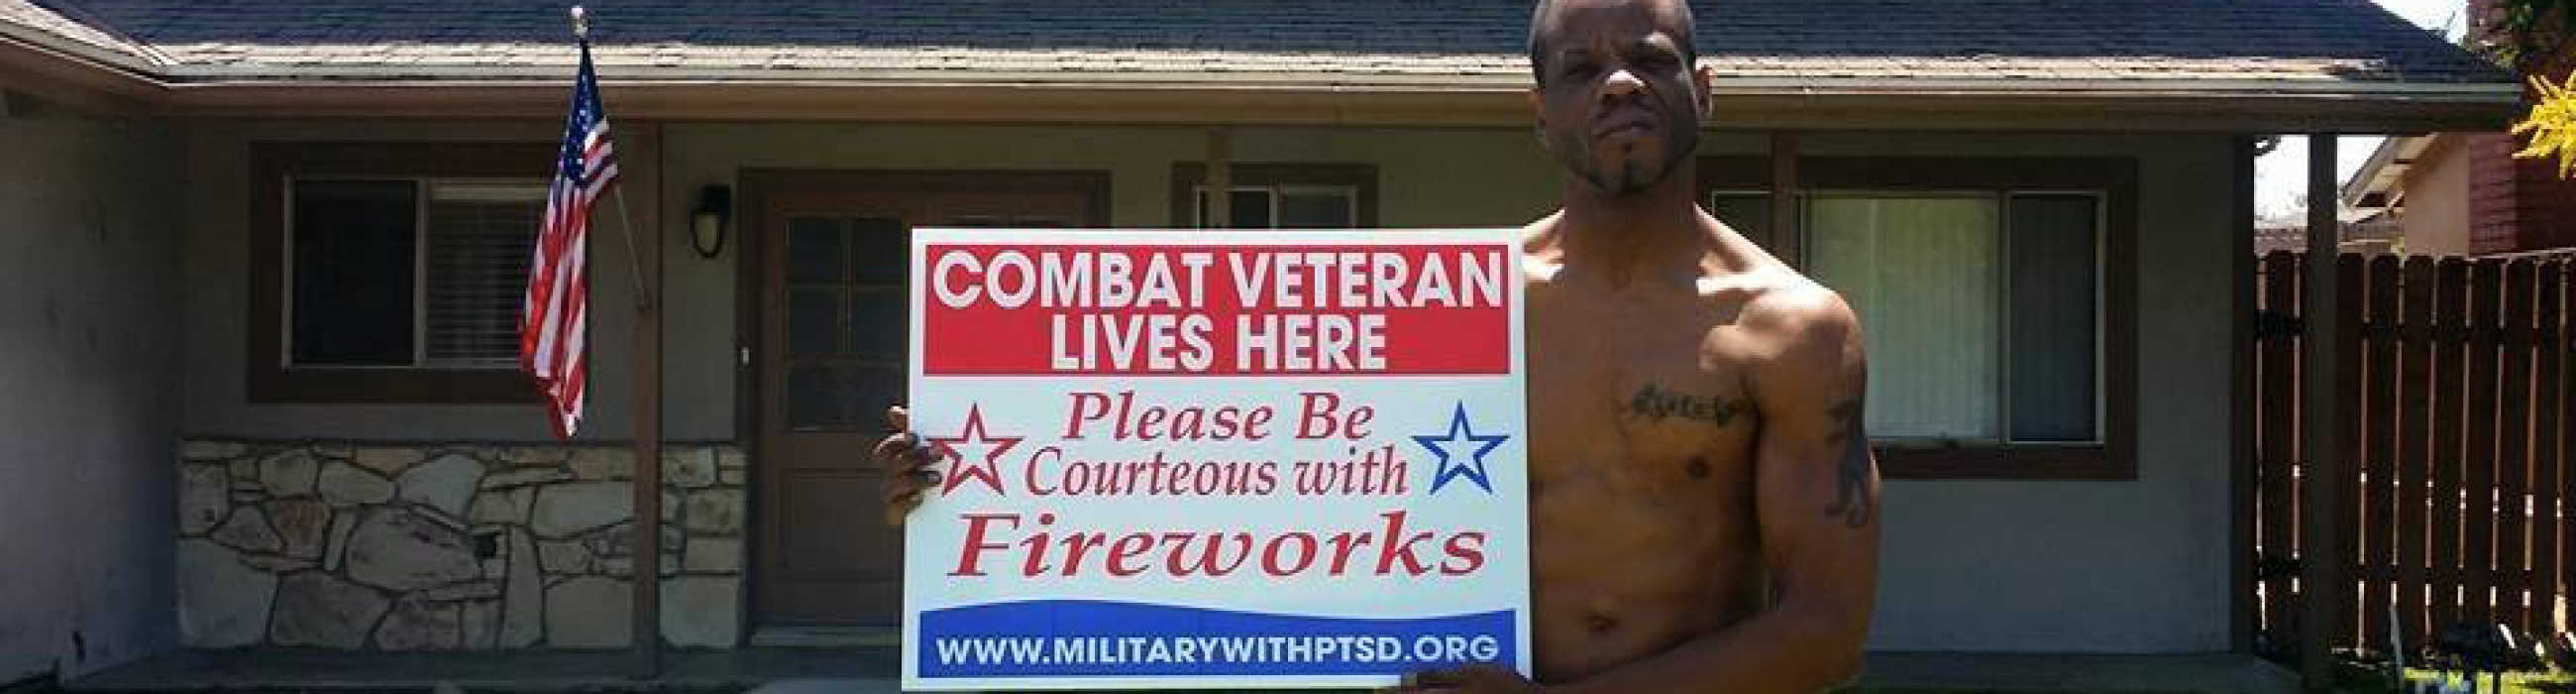 Combat Veteran Lives Here